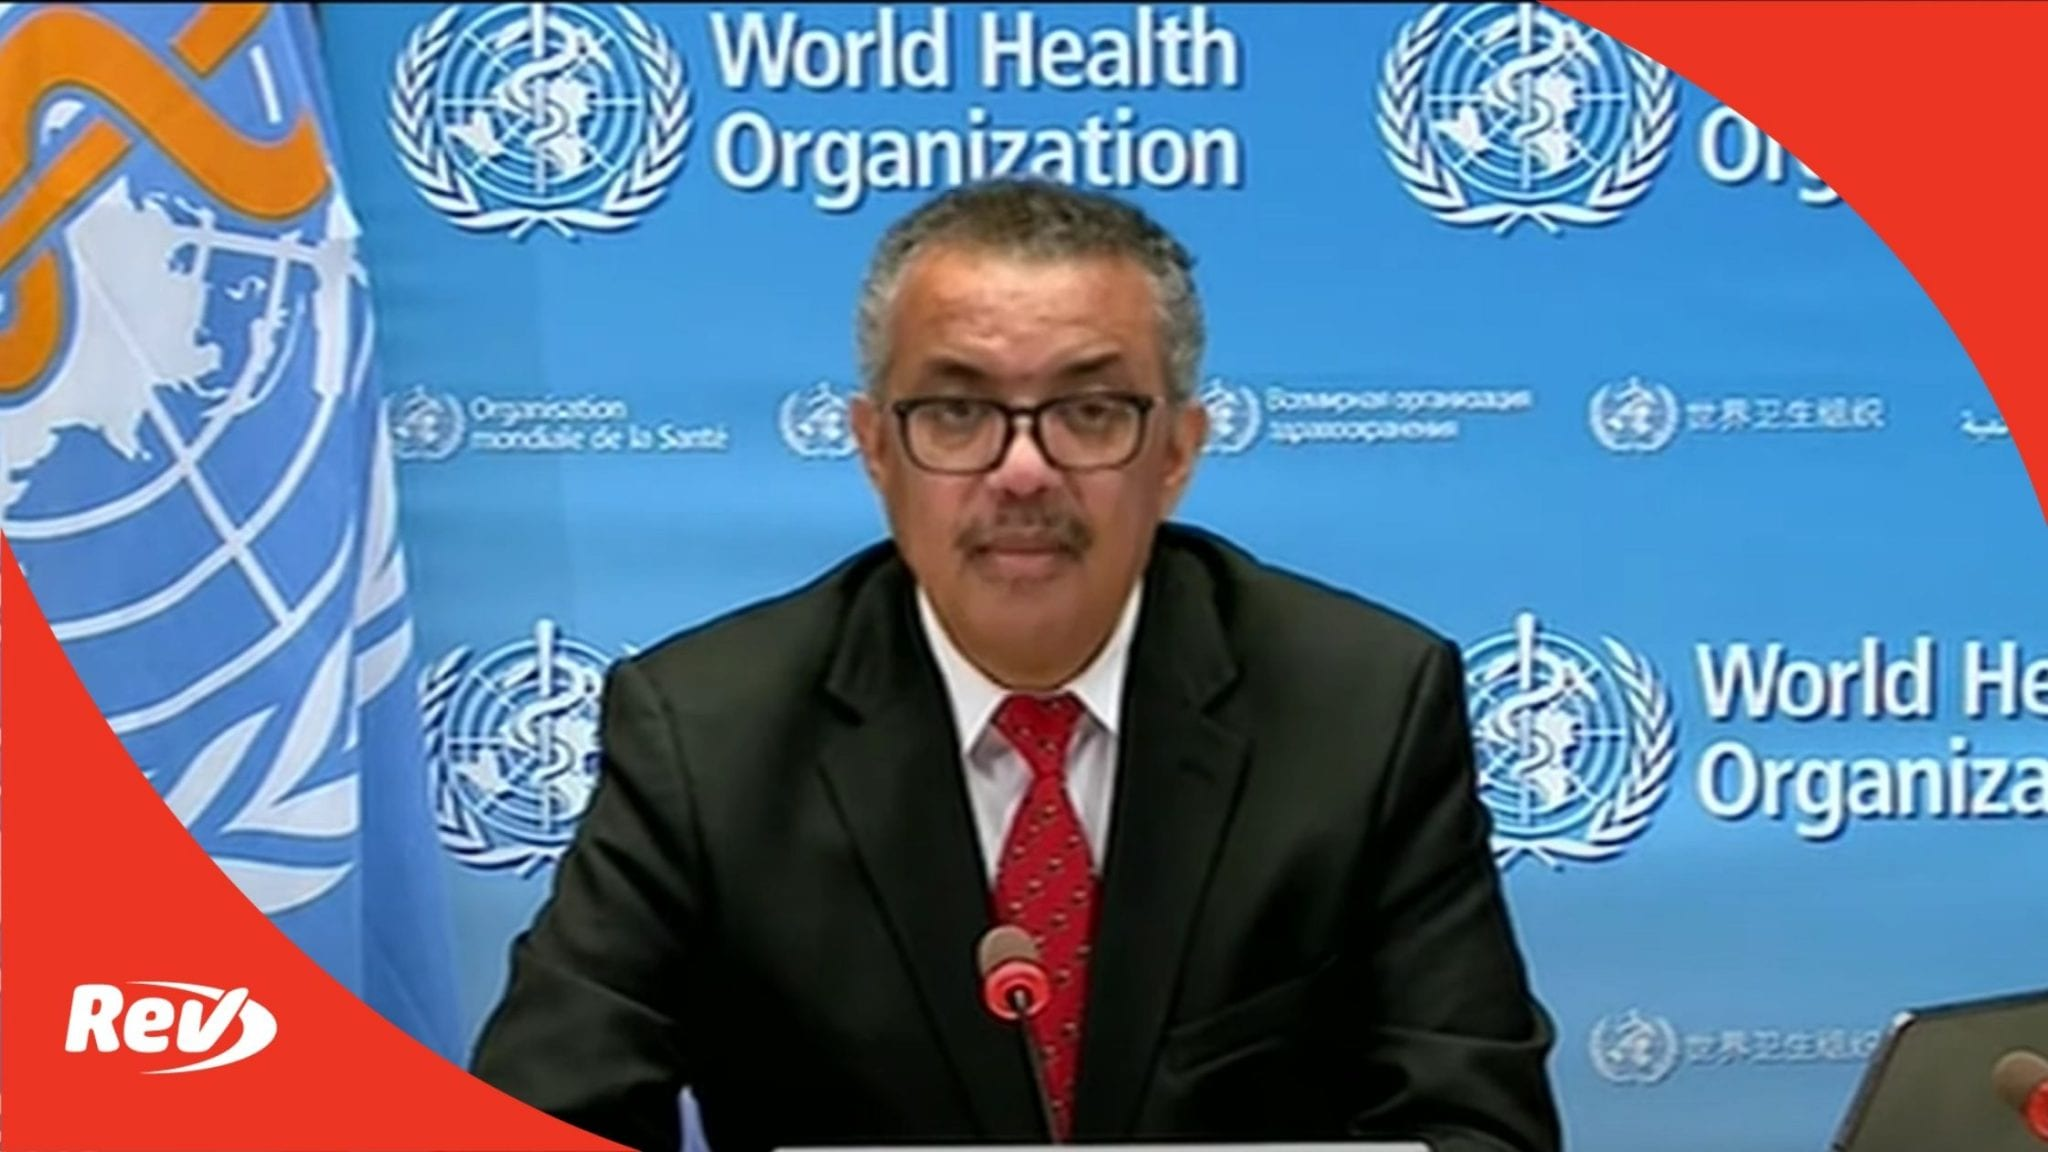 World Health Organization (WHO) Coronavirus Press Briefing Transcript November 30